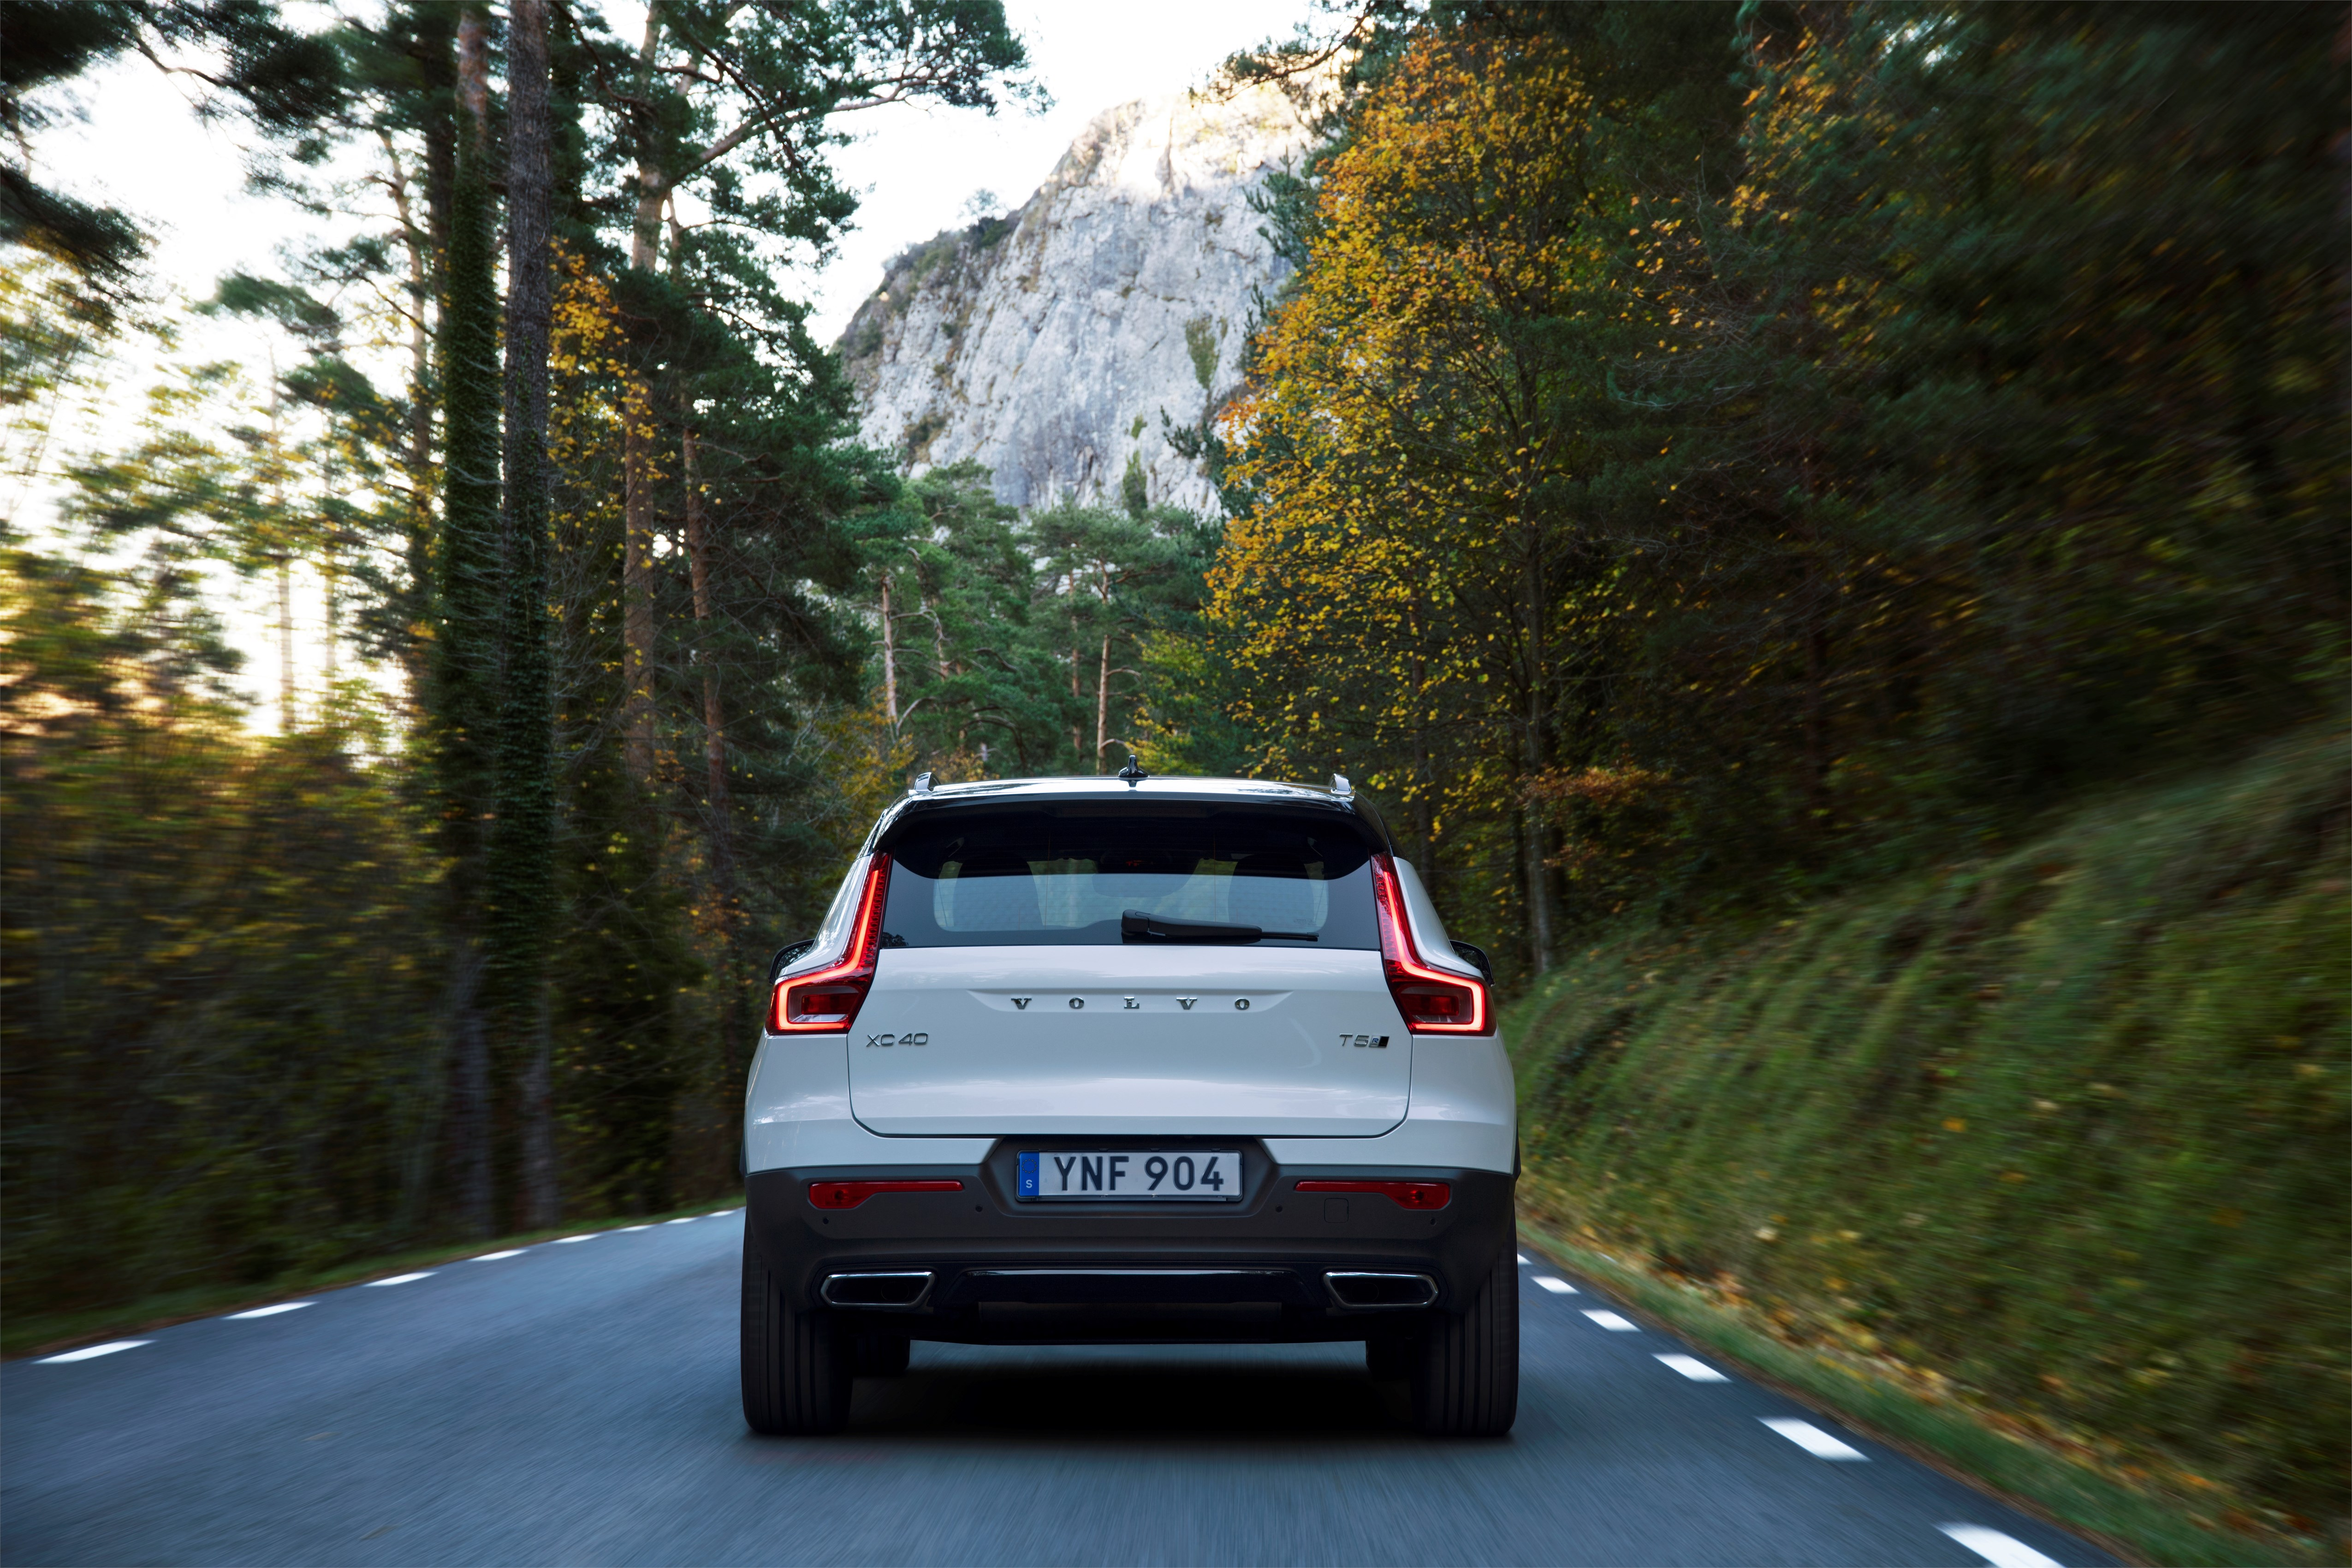 New Volvo XC40 R-Design in Crystal white with black roof - exterior, on location